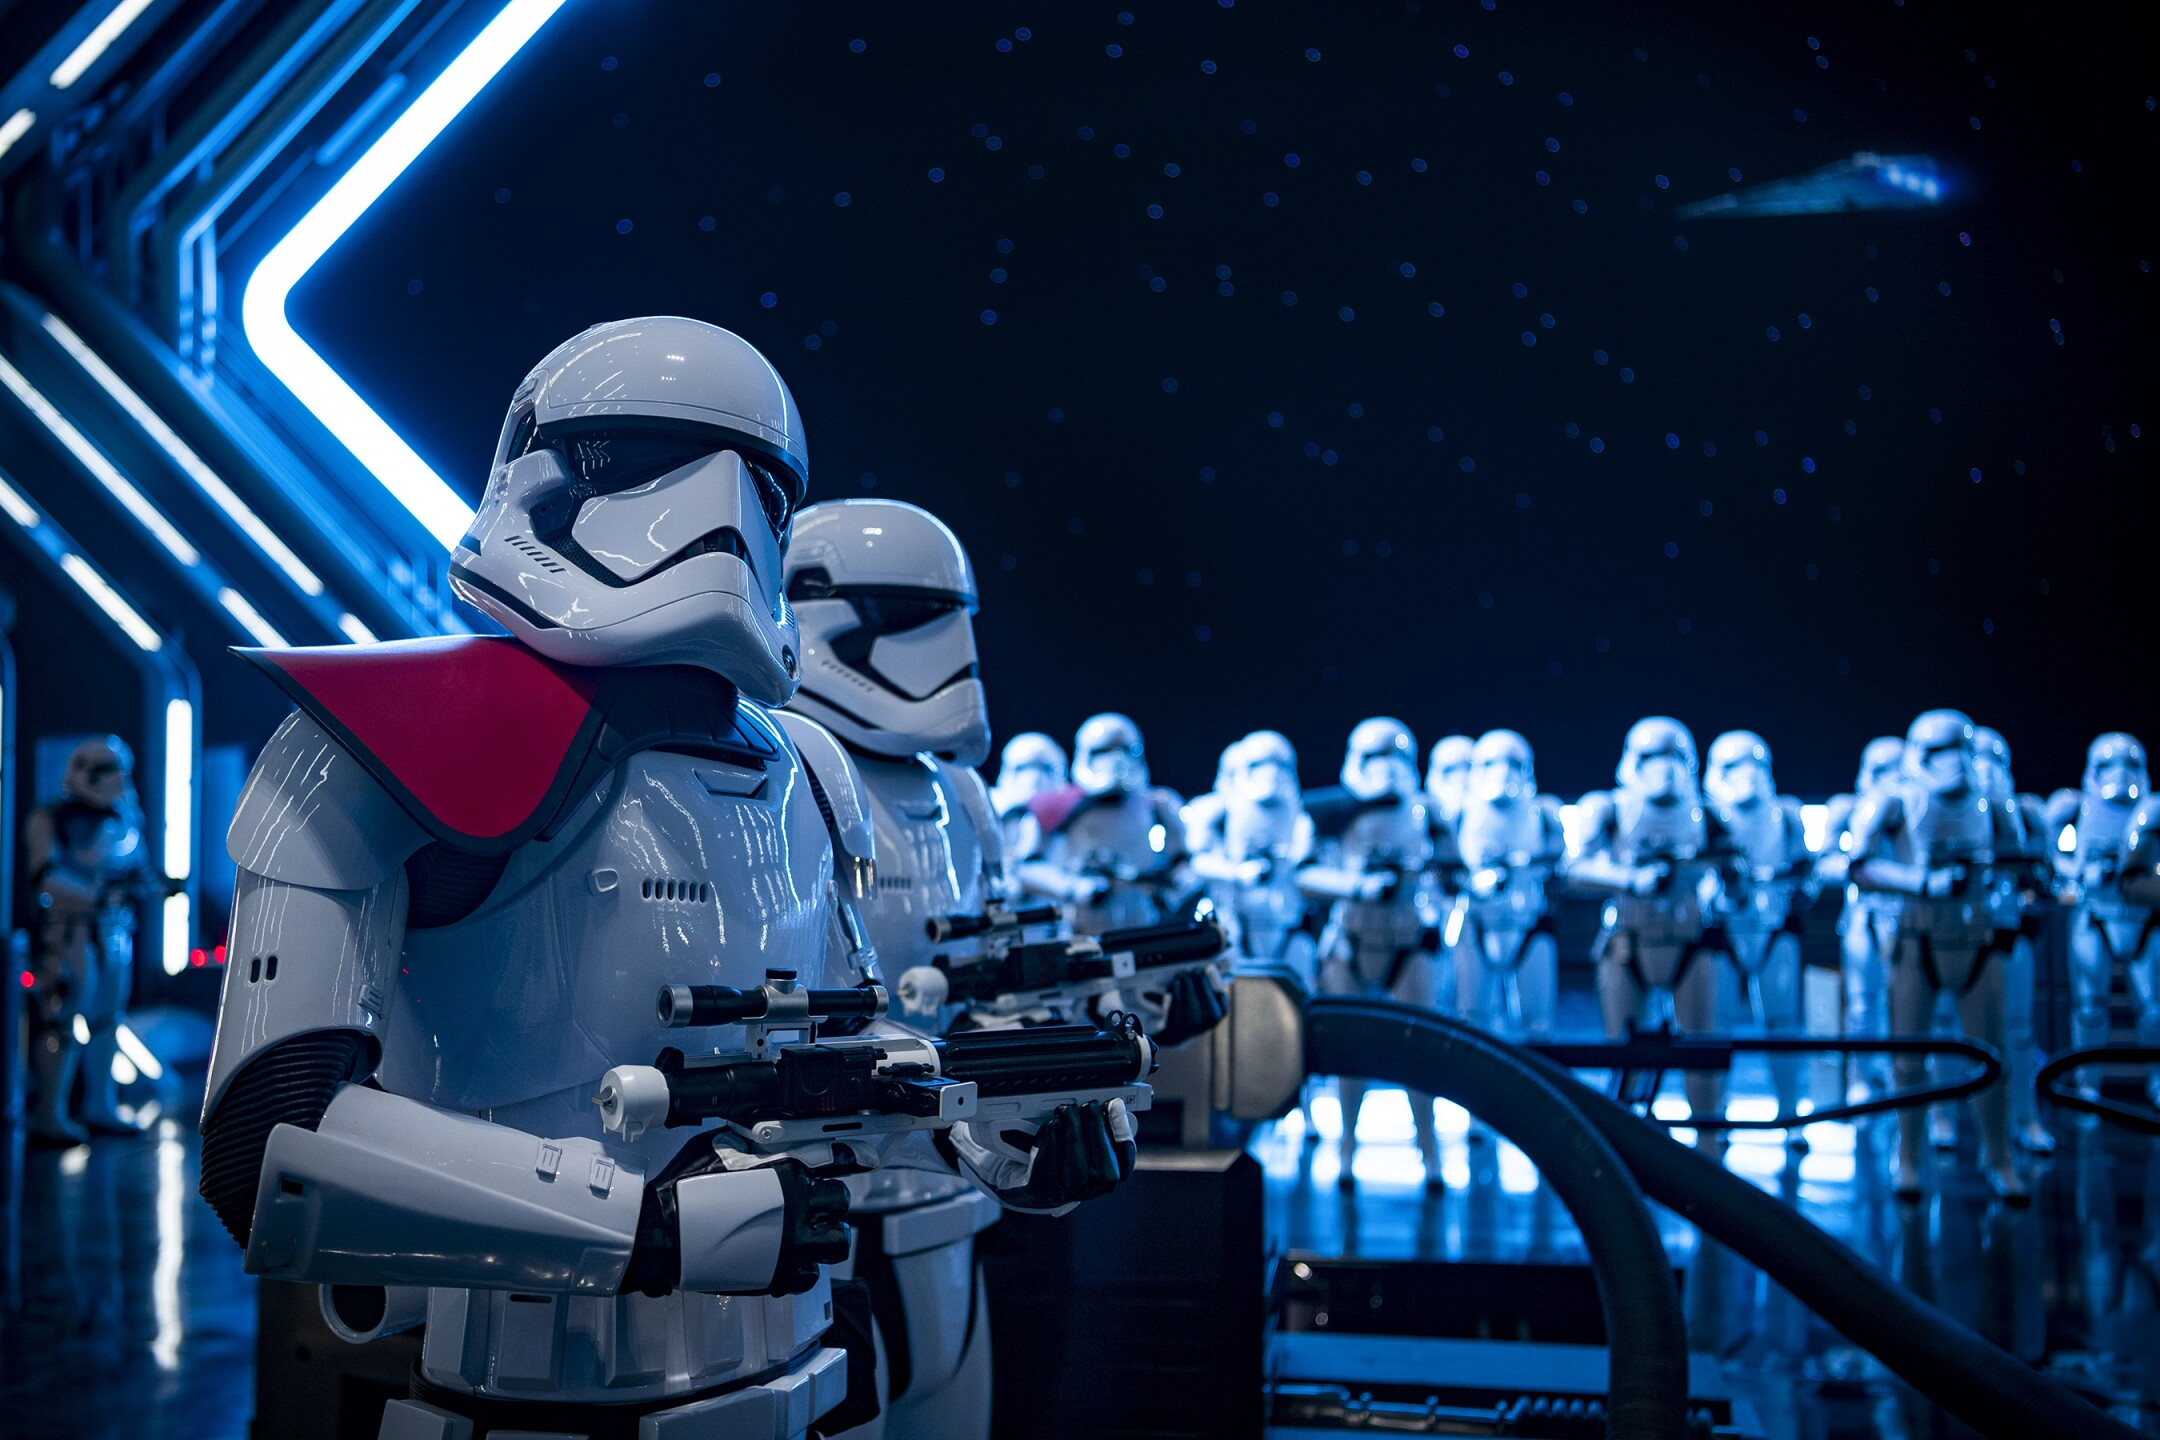 Stormtroopers in Star Wars: Galaxy's Edge